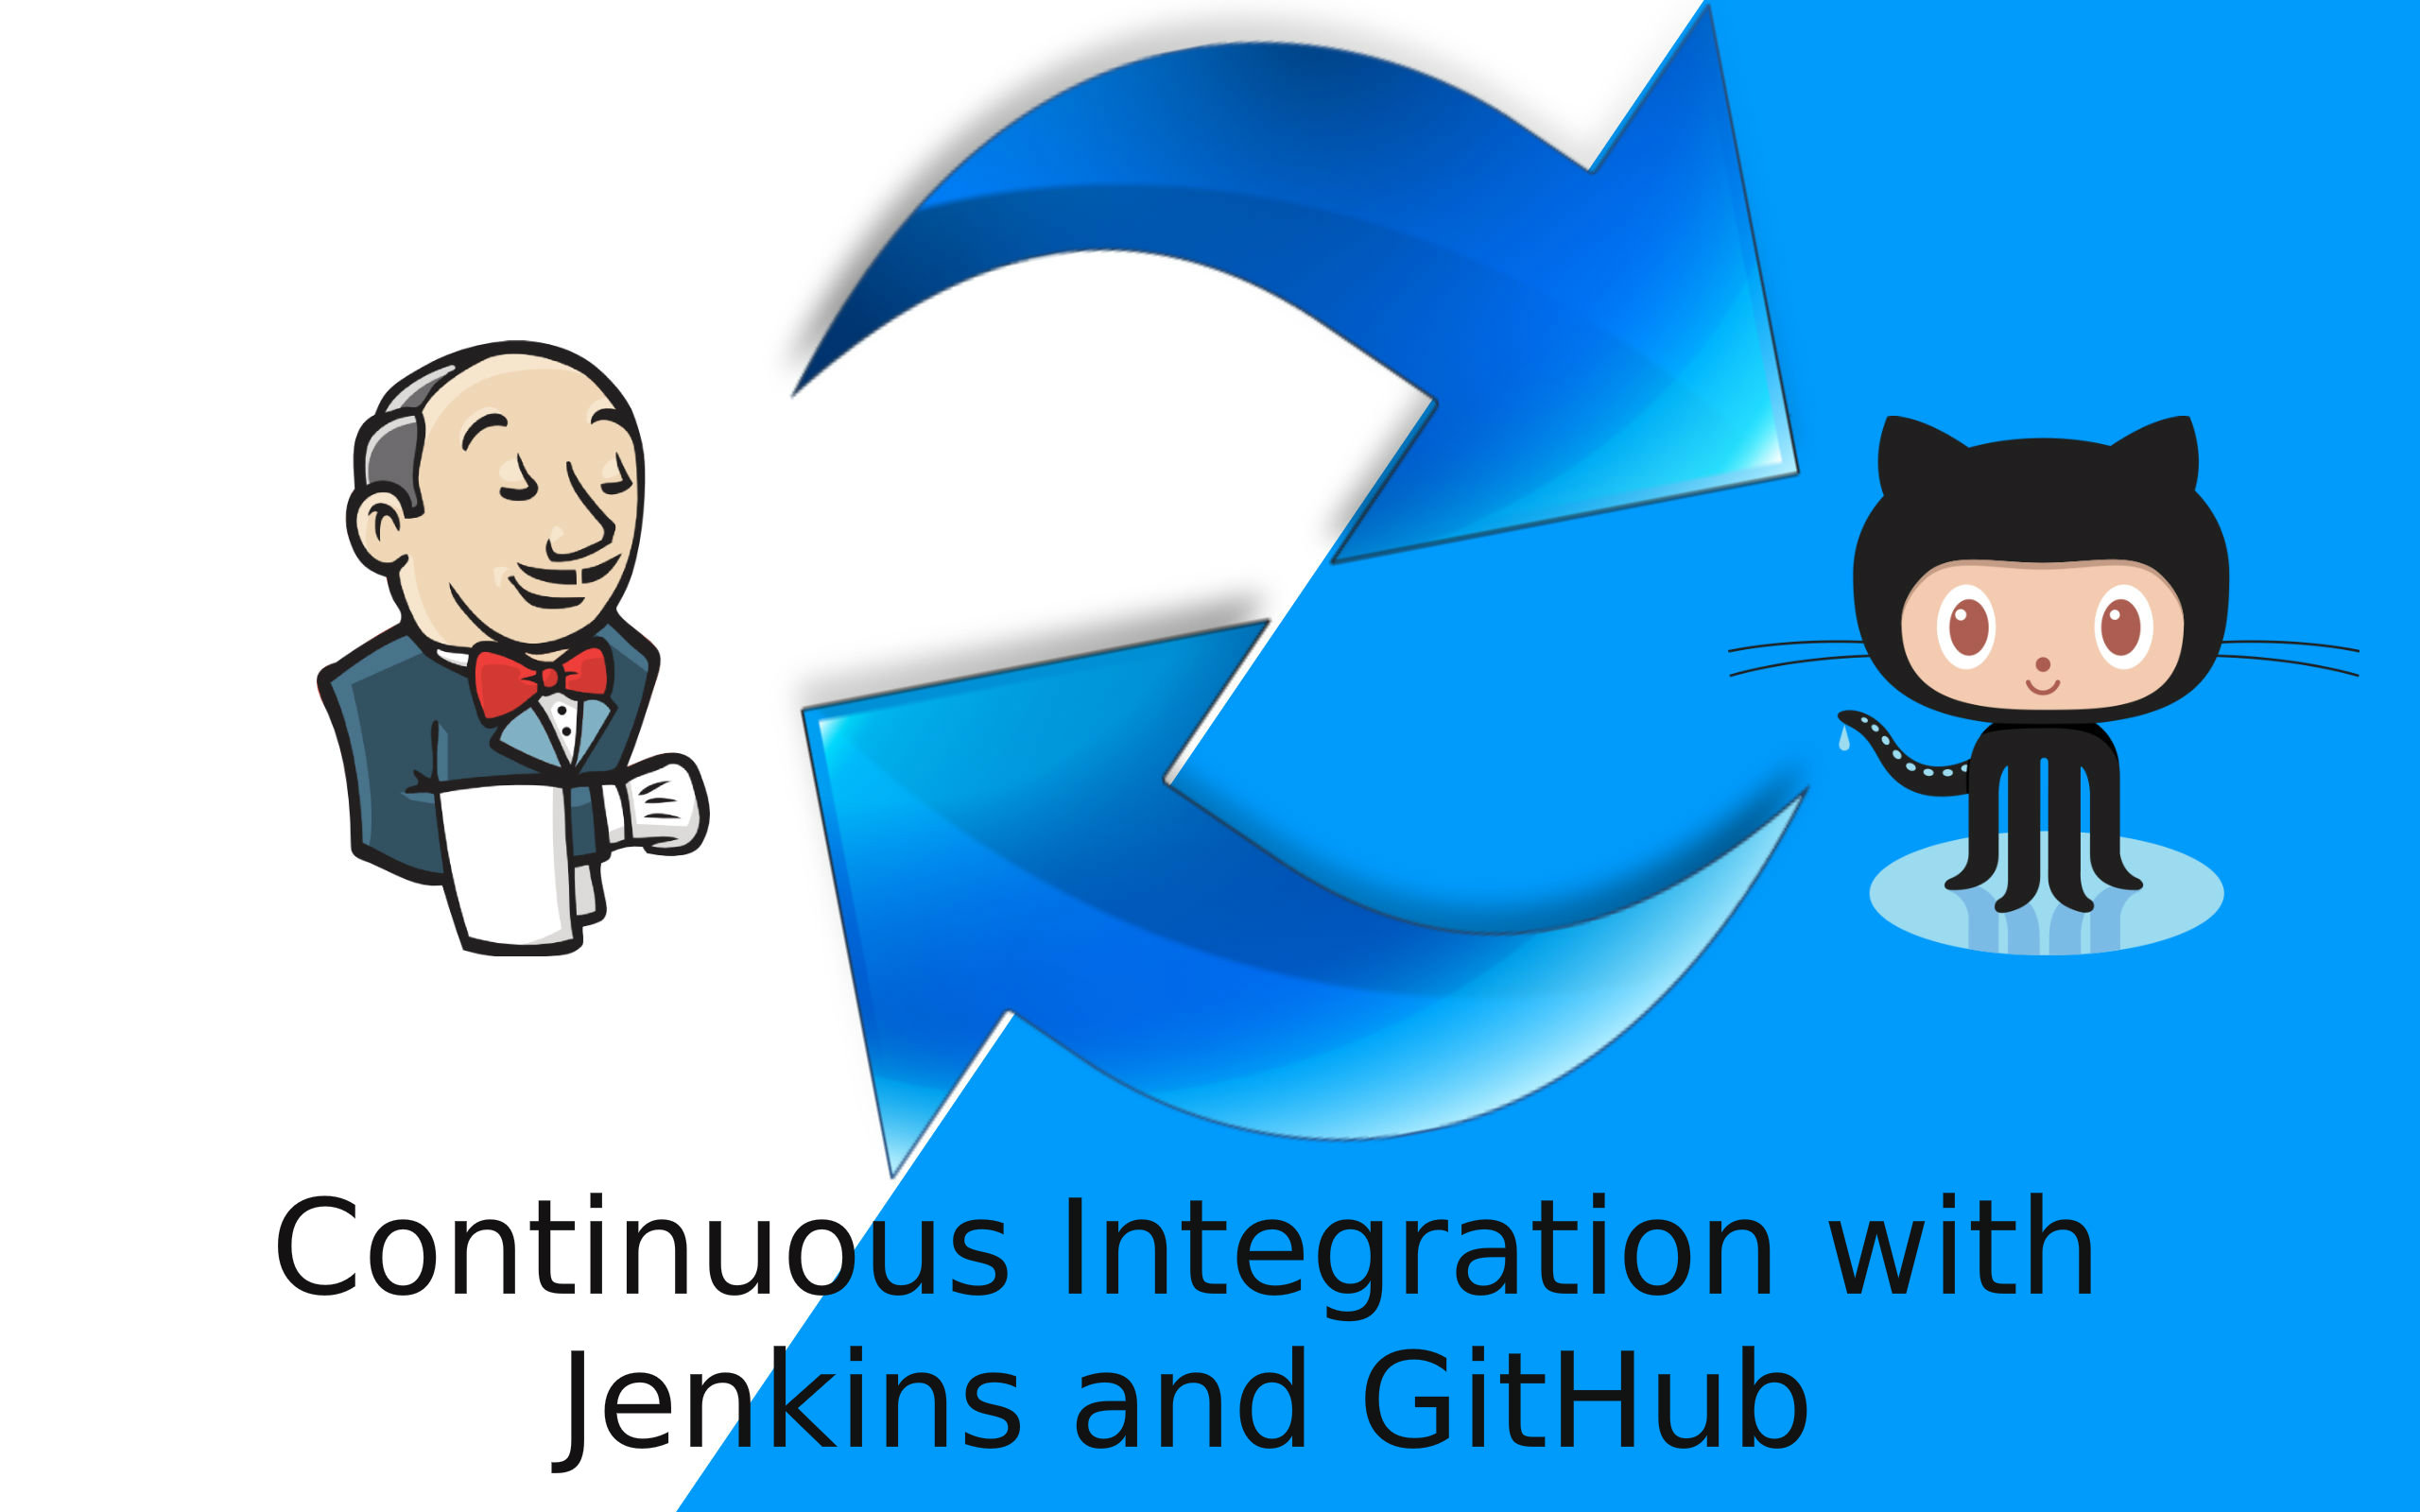 Continuous integration using Jenkins and GitHub to automate